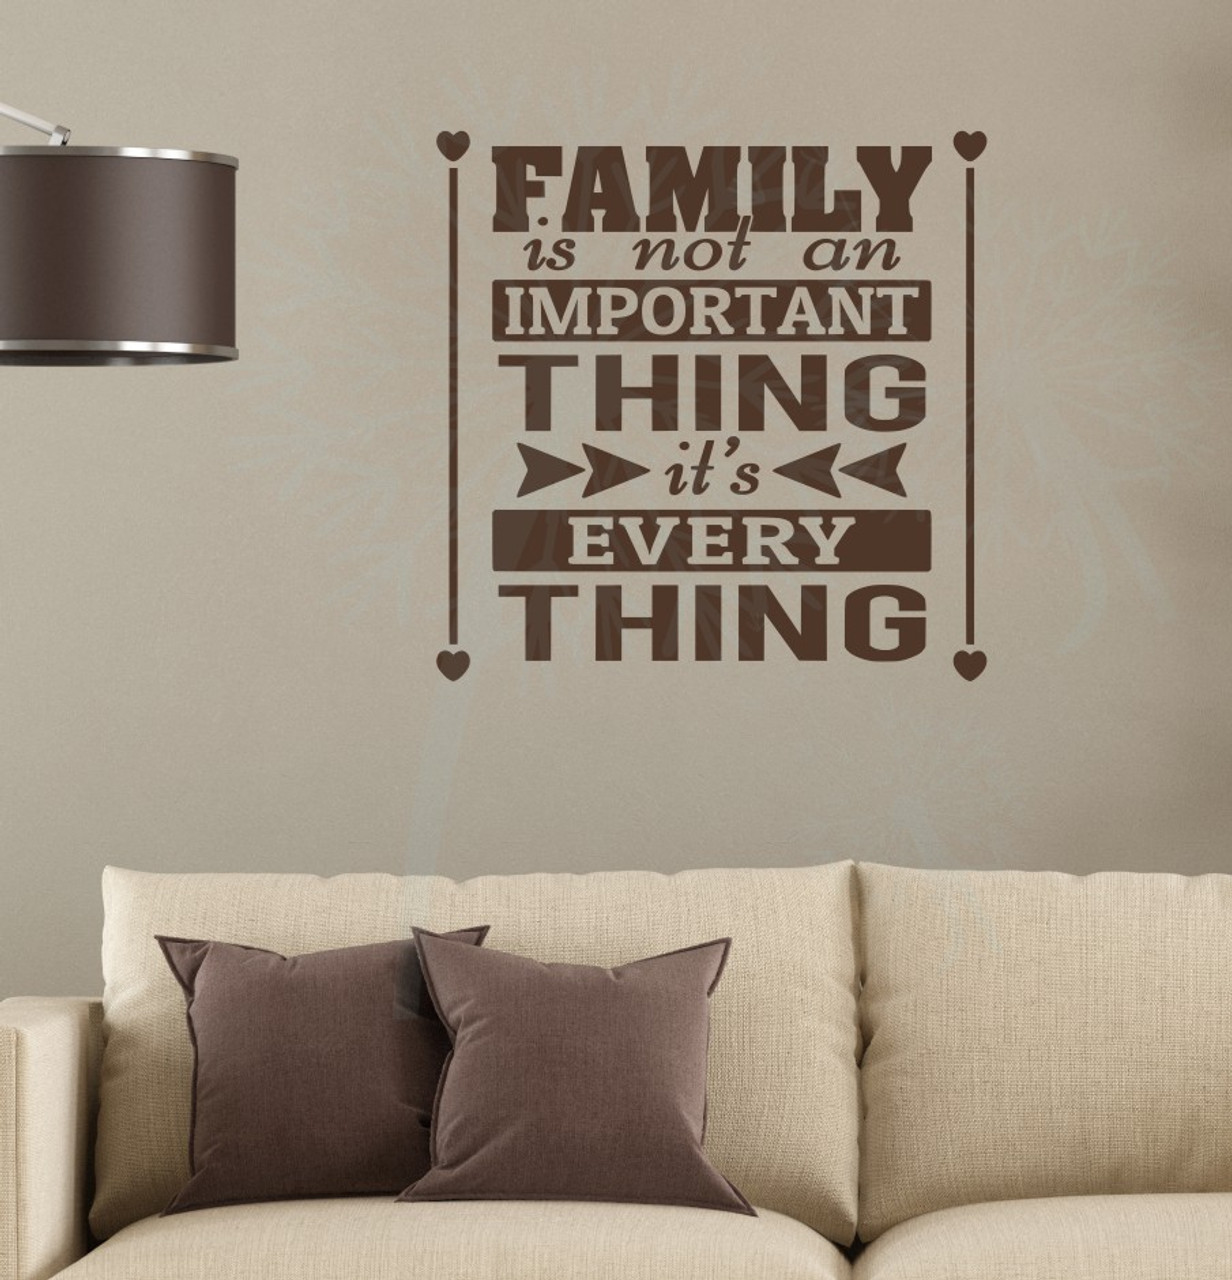 Wall Decals Quotes: Family Is Everything Home Decor Vinyl Lettering Family